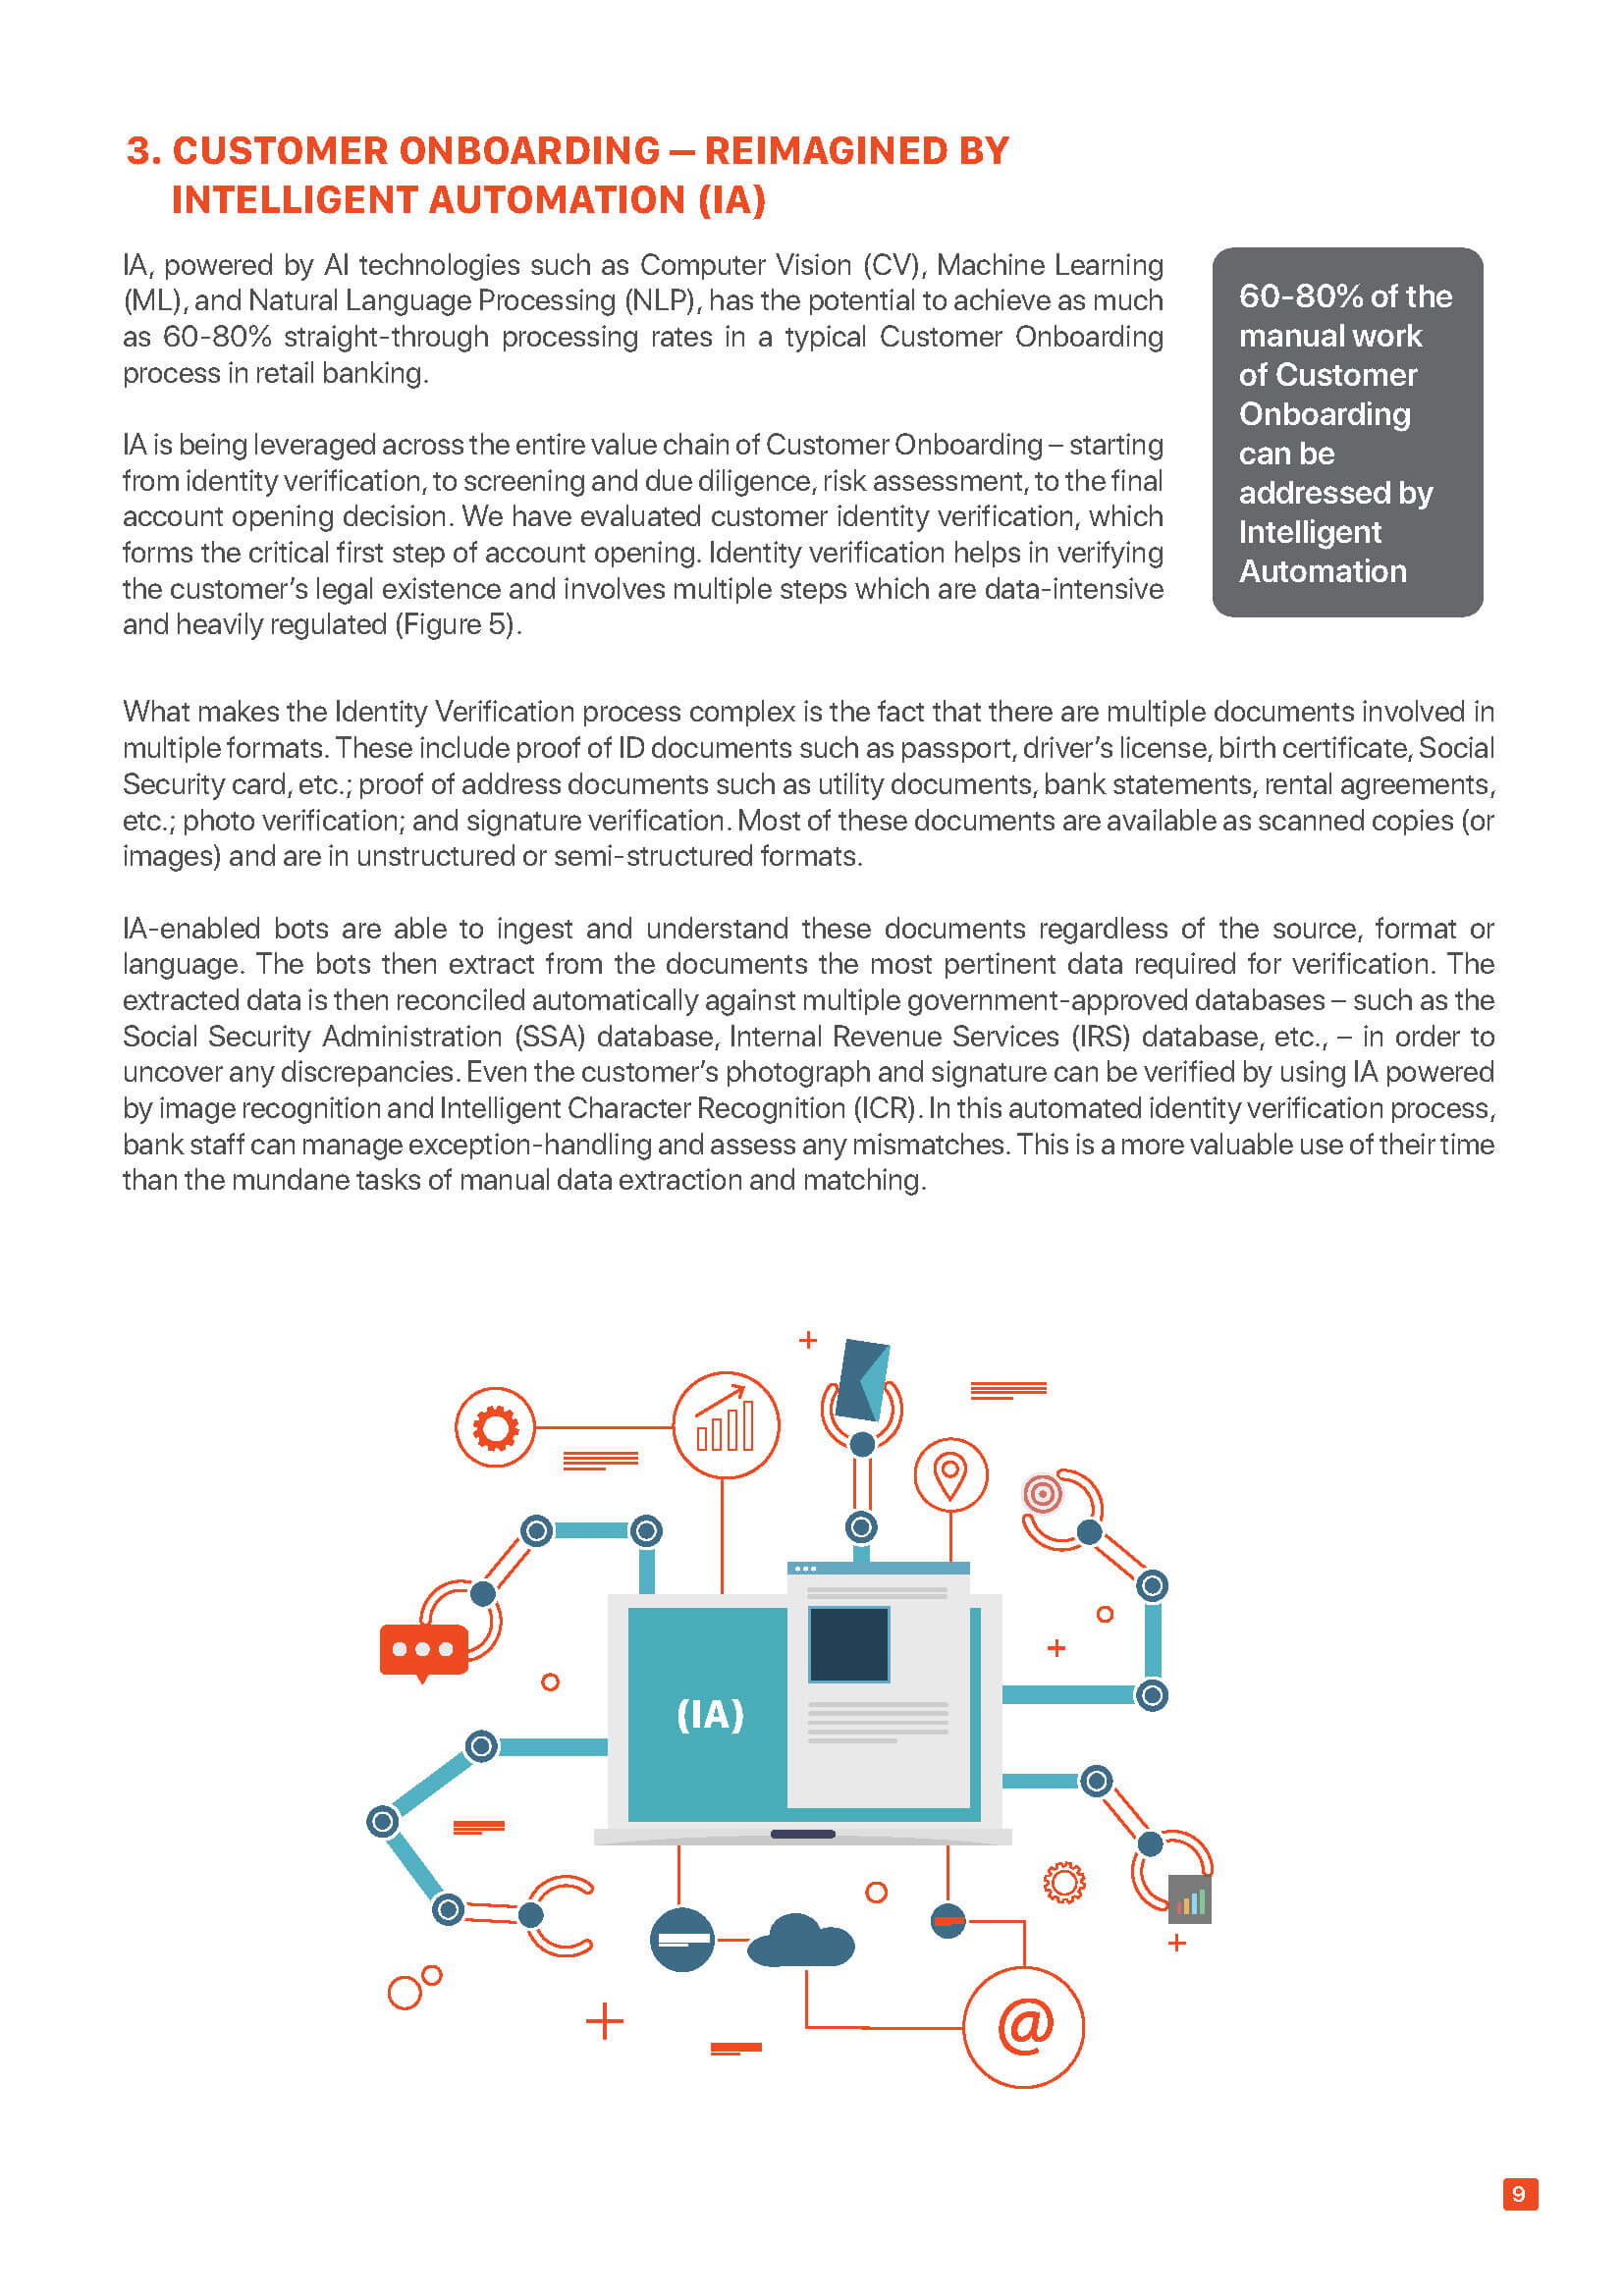 Reimagining Customer Onboarding For Banks: Intelligent Automation In The Time Of COVID-19